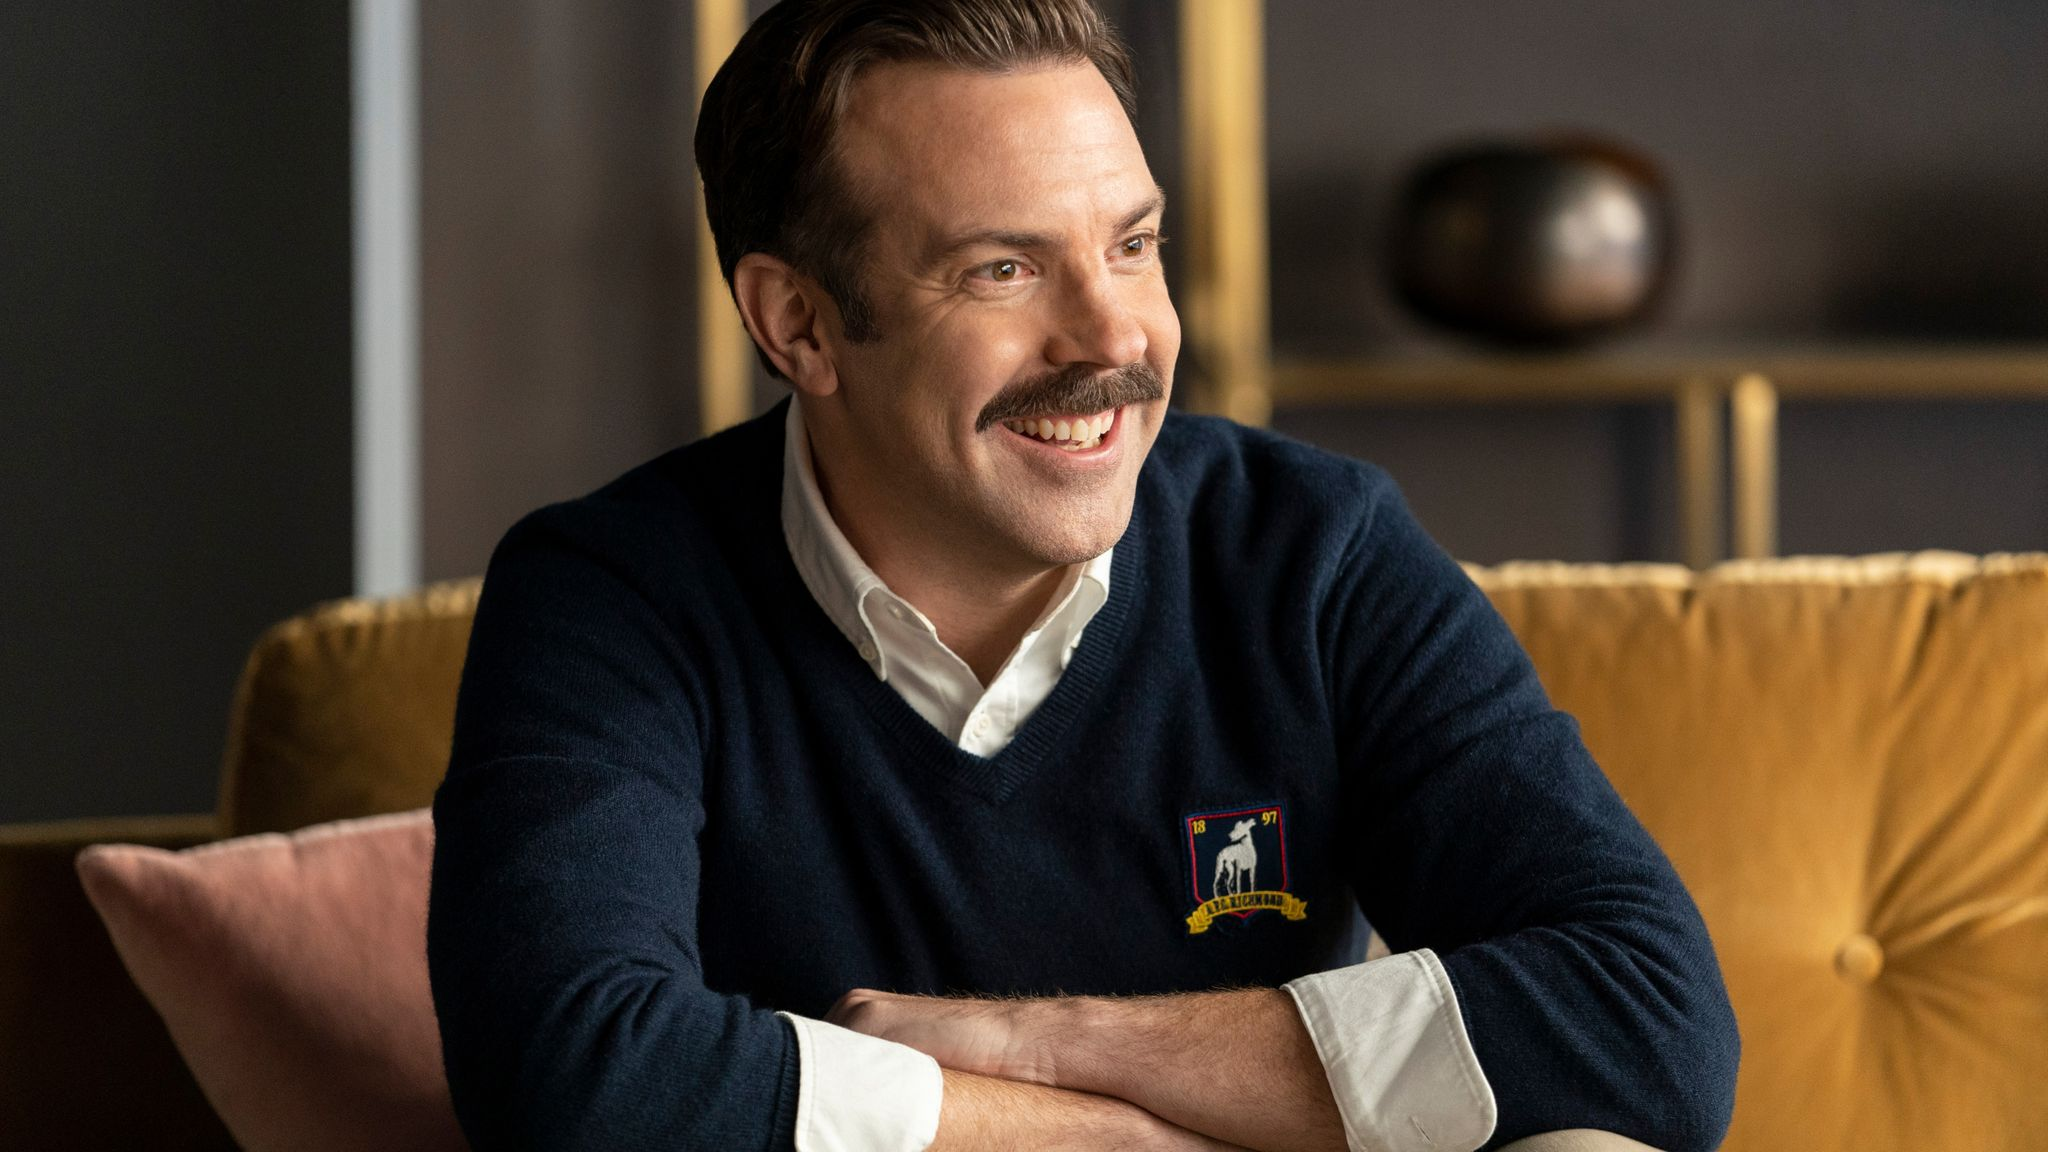 Jason Sudeikis in Ted Lasso. Pic: Apple TV+